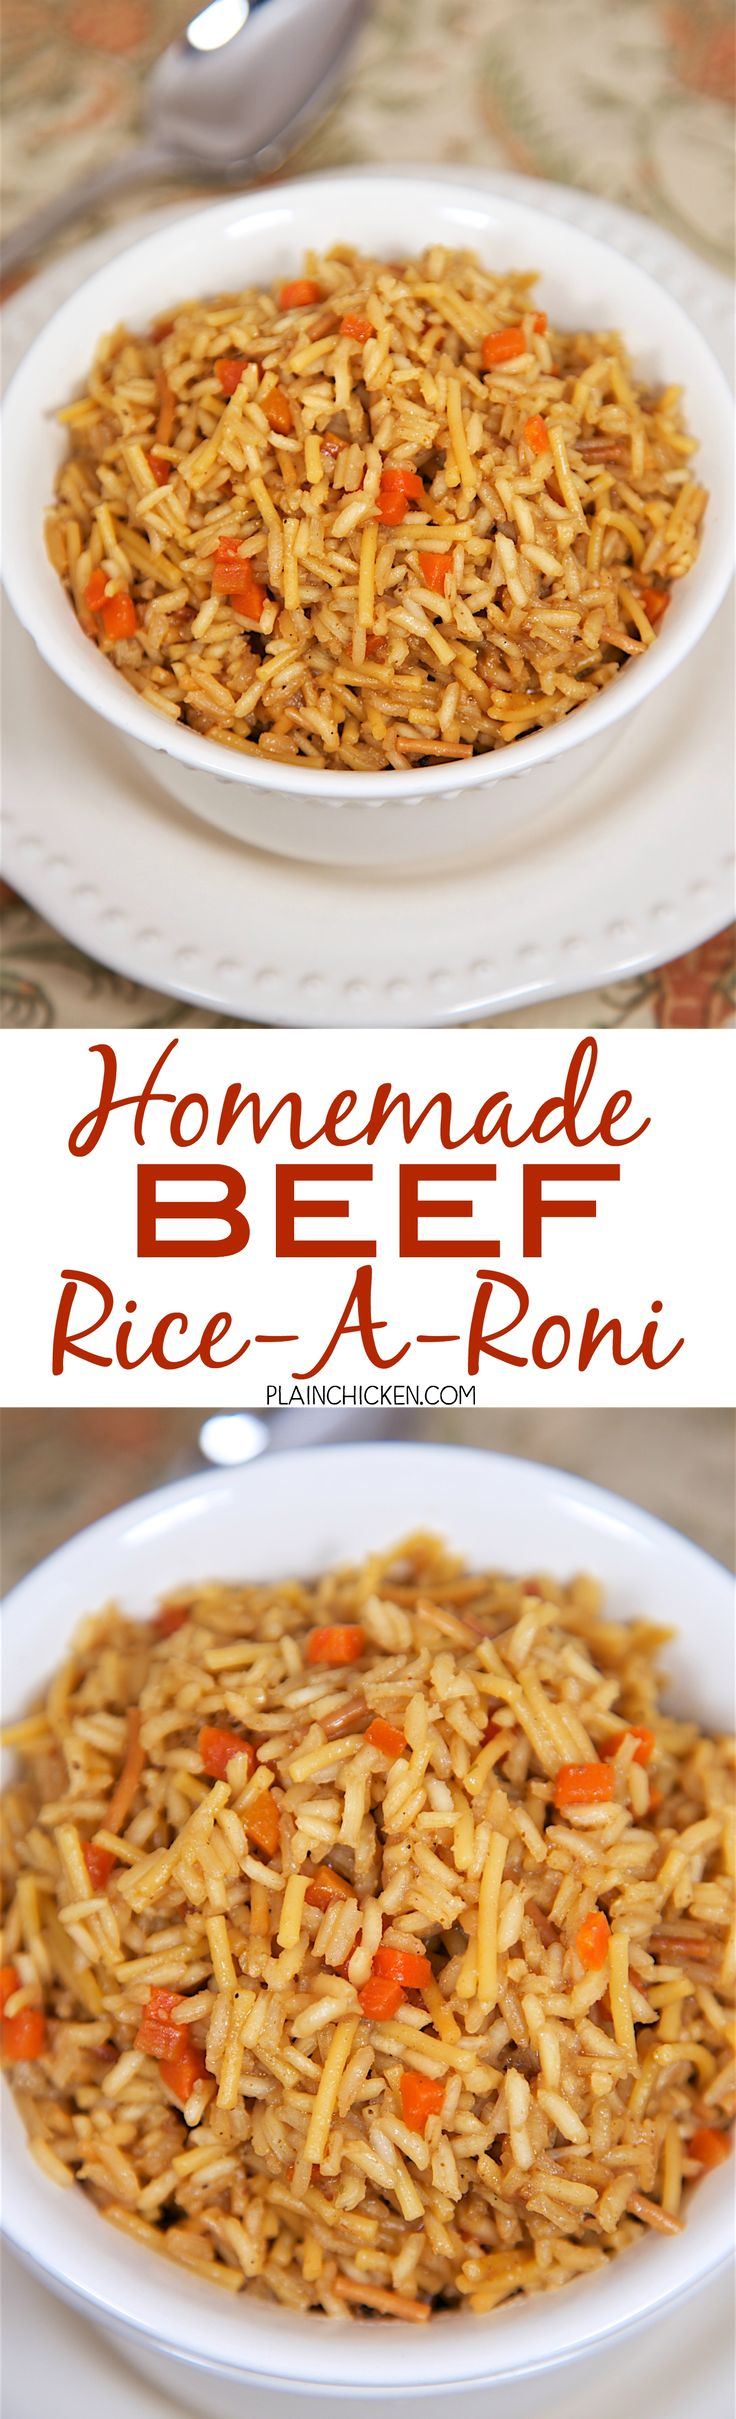 Homemade Beef Rice-A-Roni - never use the boxed stuff again! This looked and tasted just like the real thing! I had to tell my husband that I made the rice from scratch - not a box. Rice, pasta, beef broth, beef bouillon, onion powder, Worcestershire, soy sauce, garlic powder, pepper and chopped carrots. Seriously delicious - tons of great beefy flavor! We make this all the time - SO much better than the box.